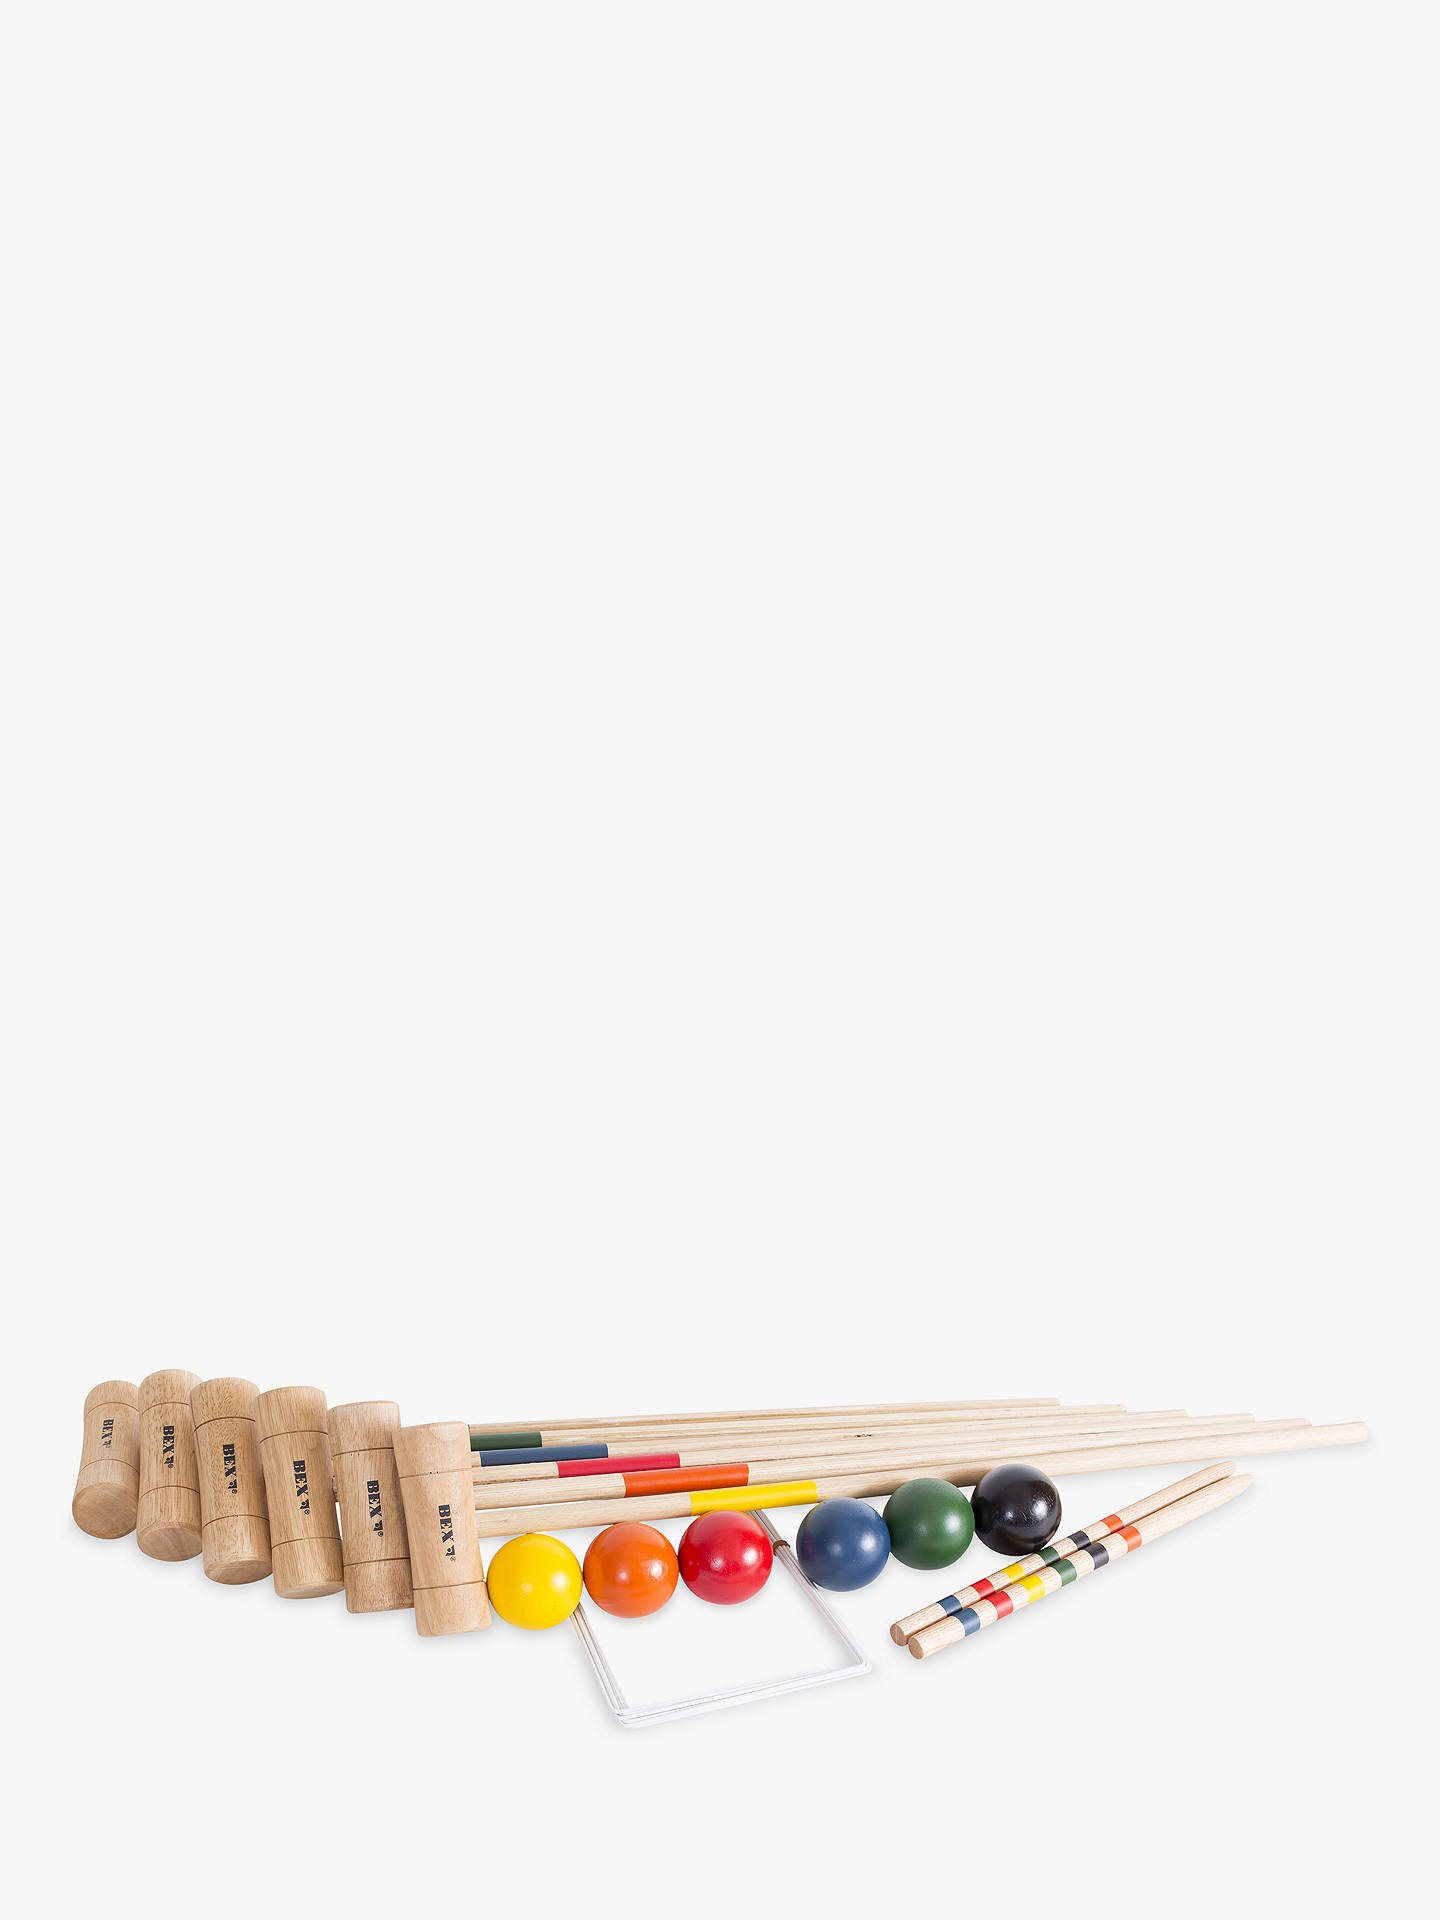 Buy Bex 6 Mallet Croquet Set Online at johnlewis.com